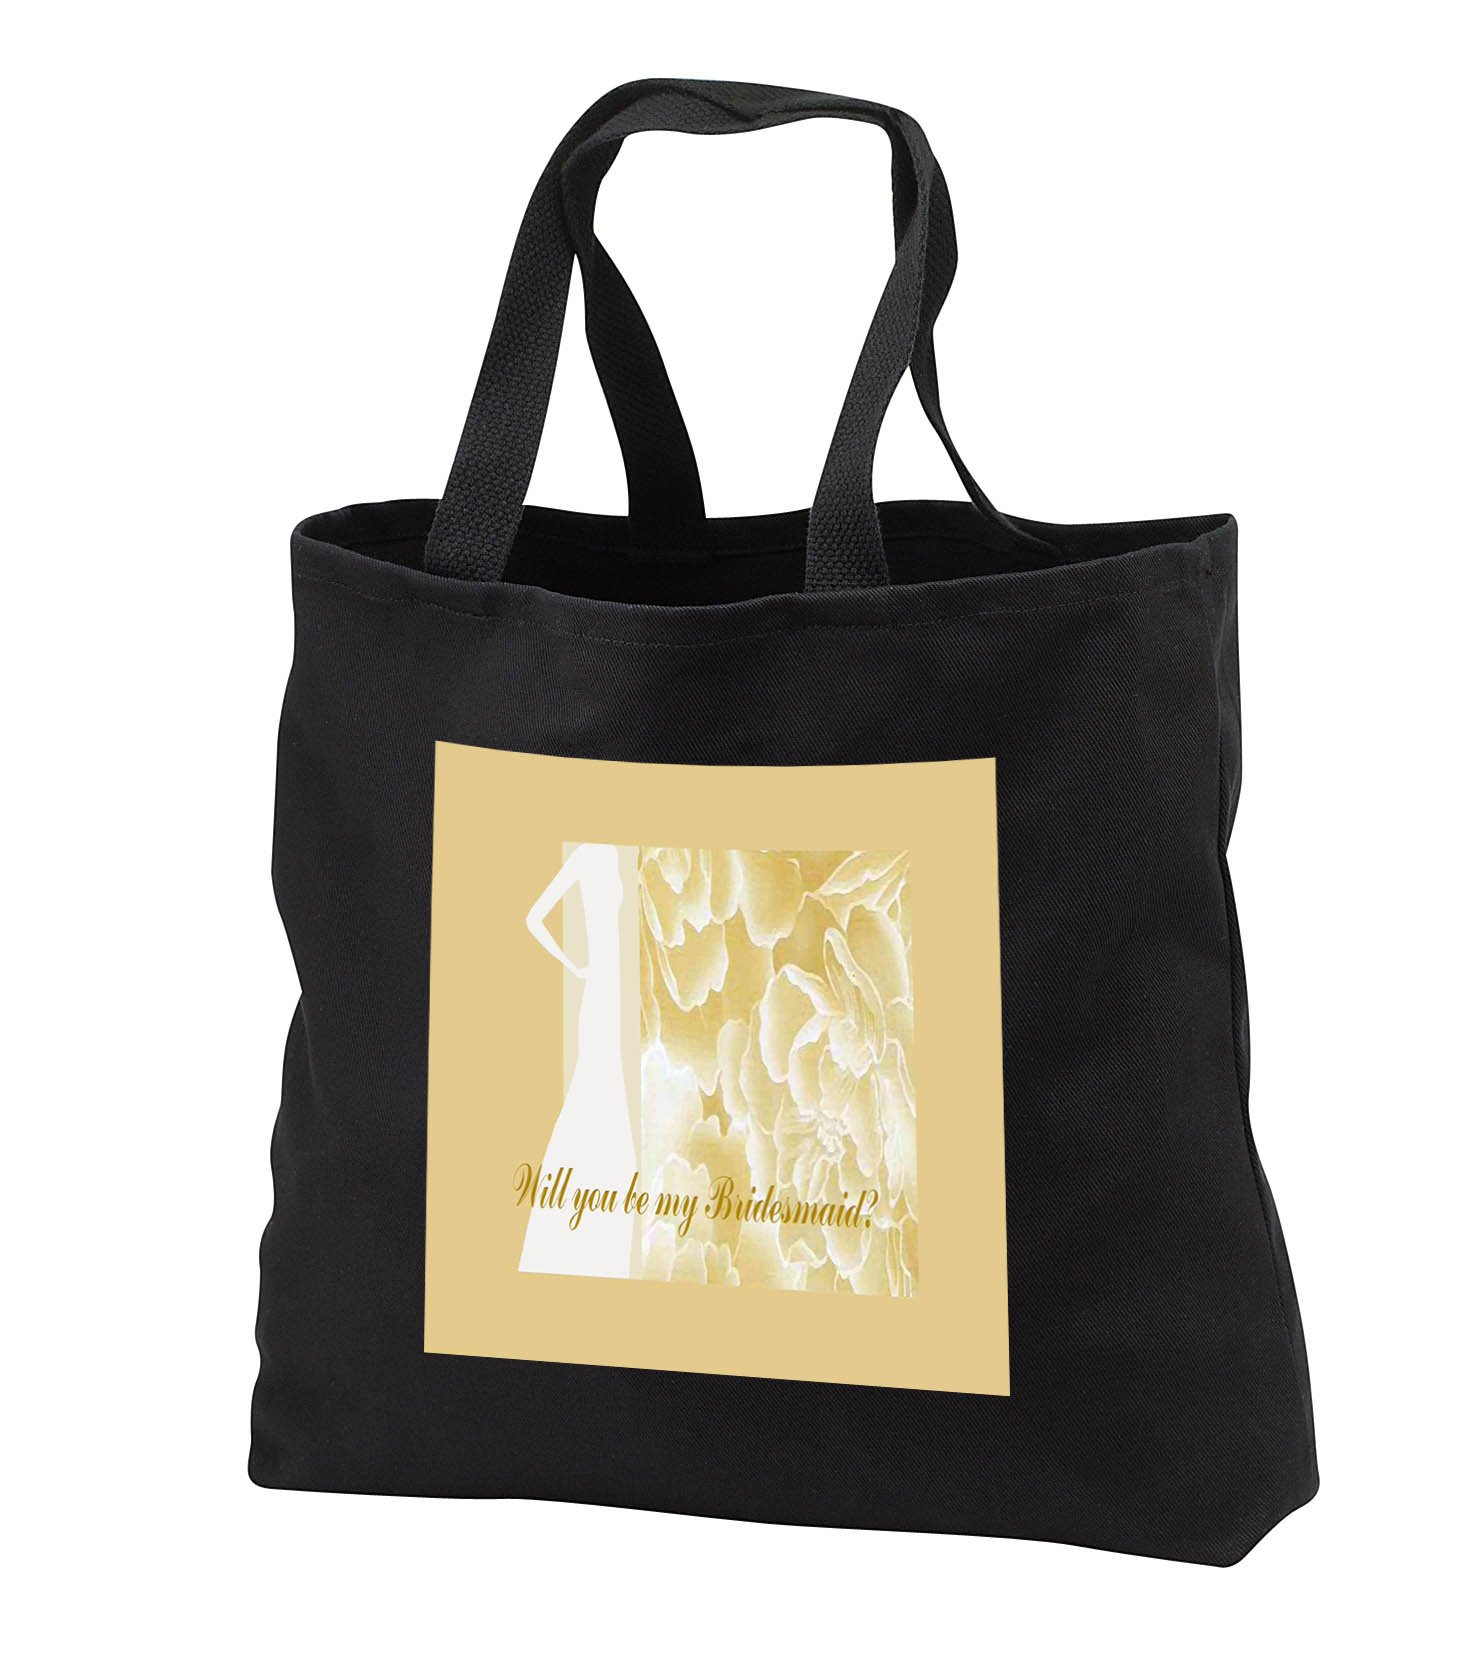 Beverly Turner Wedding Bridal Party Design - Bridesmaid Request, Lady in White Dress, Yellow Flowers - Tote Bags - Black Tote Bag JUMBO 20w x 15h x 5d (tb_282209_3)